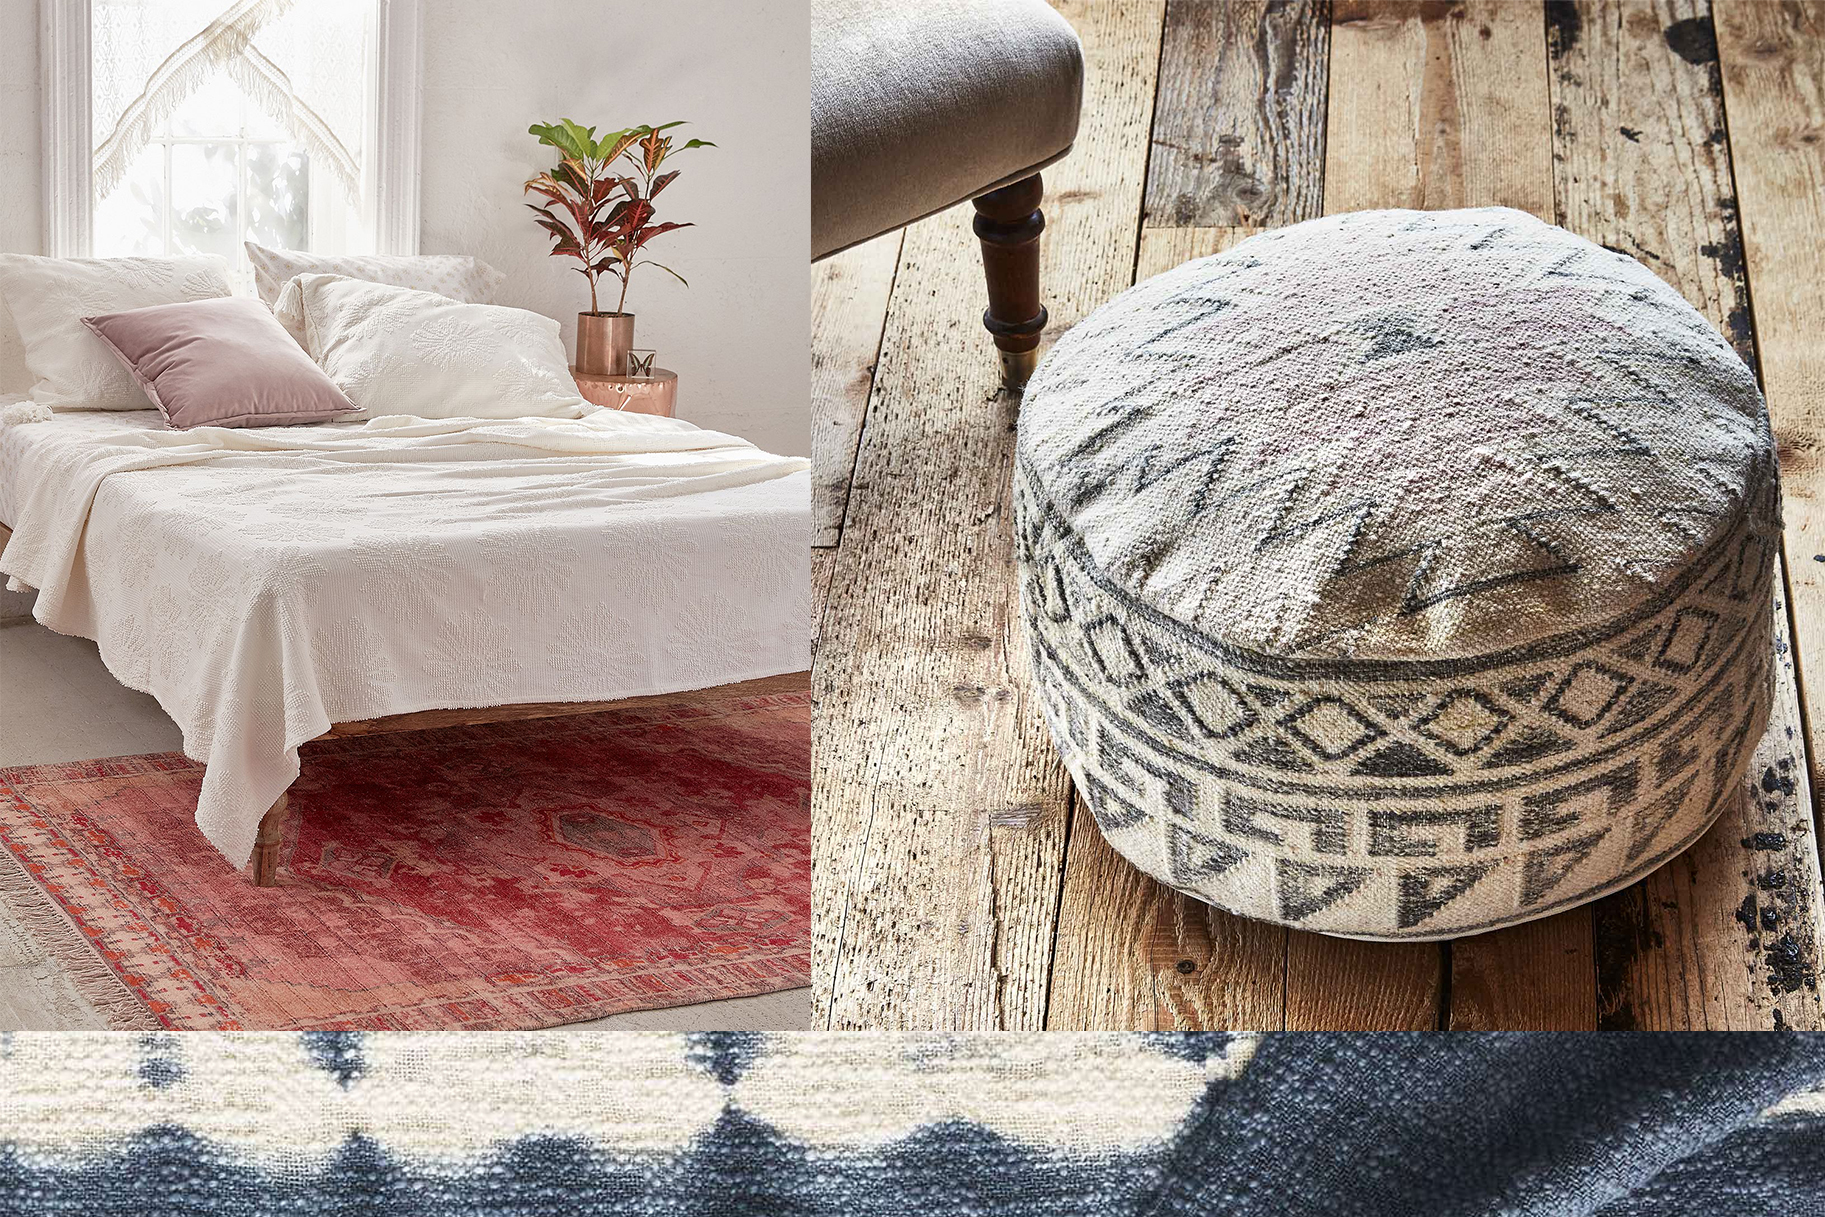 The Best Boho Home Décor To Give Your Space That Eclectic Chic Vibe